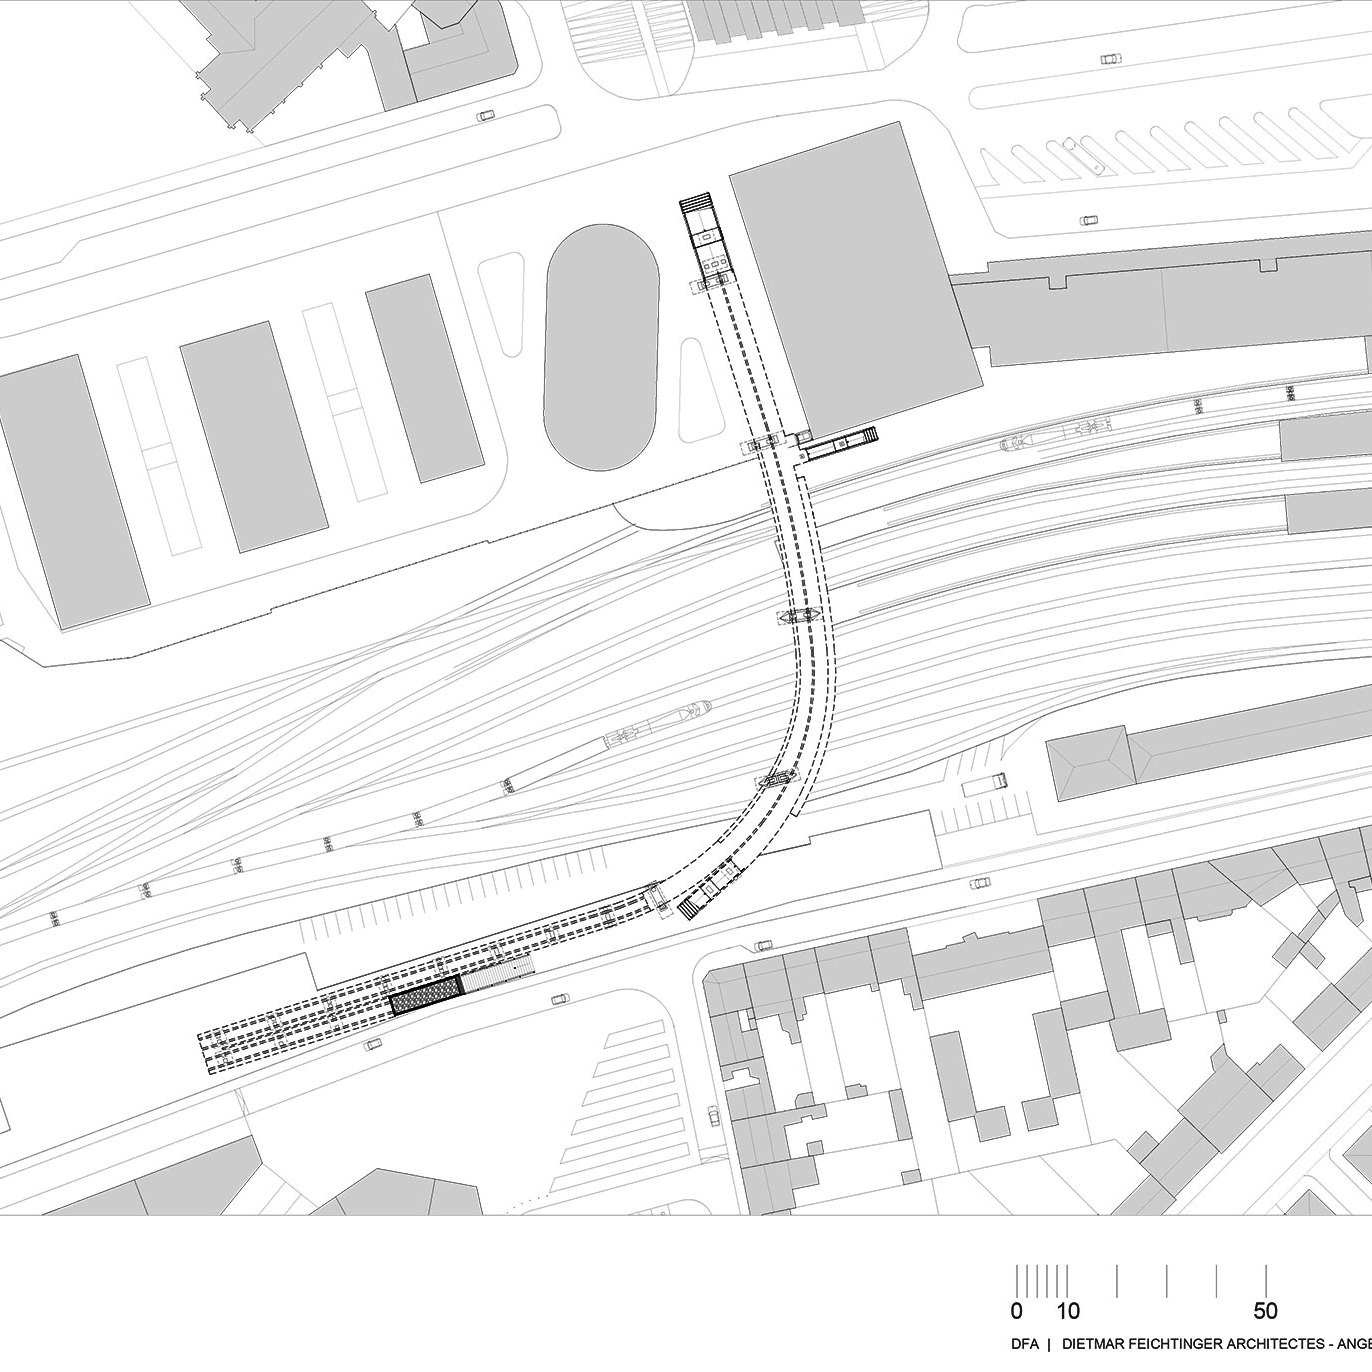 Floor Plan - Footbridge at Angers Saint-Laud TGV Train Station / Dietmar Feichtinger Architectes (DFA)